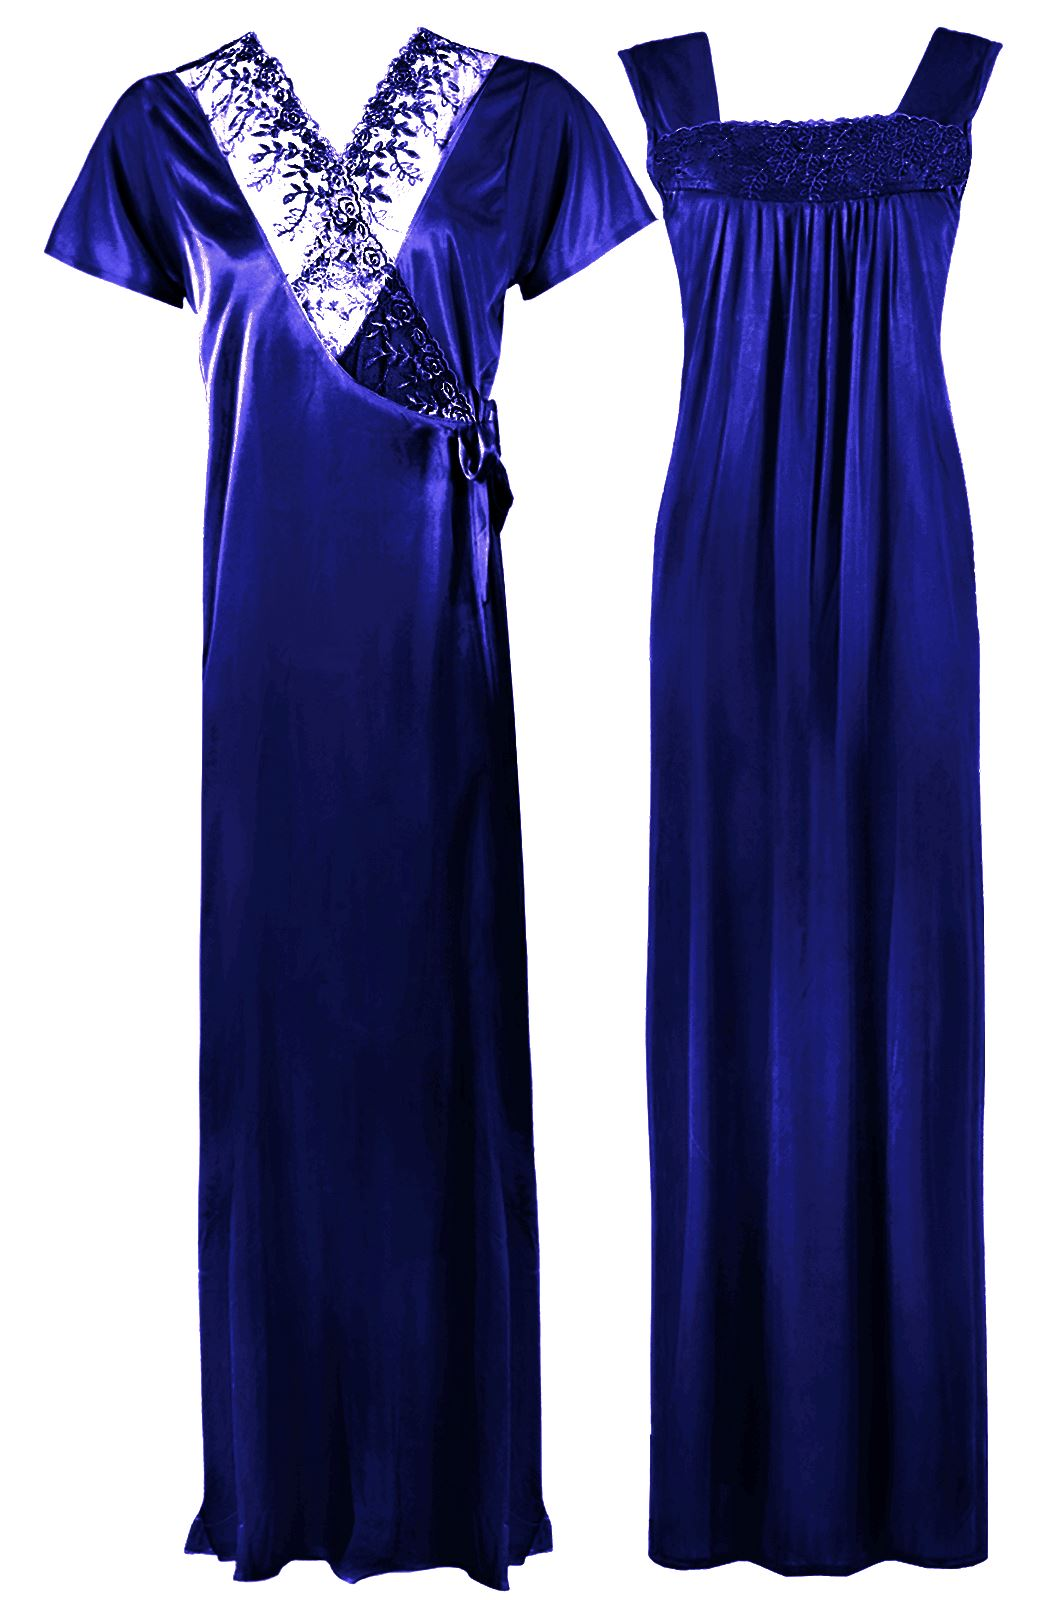 Satin Nighty With Dressing Gown / Robe [colour]- Hautie UK, #Nightfashion | #Underfashion